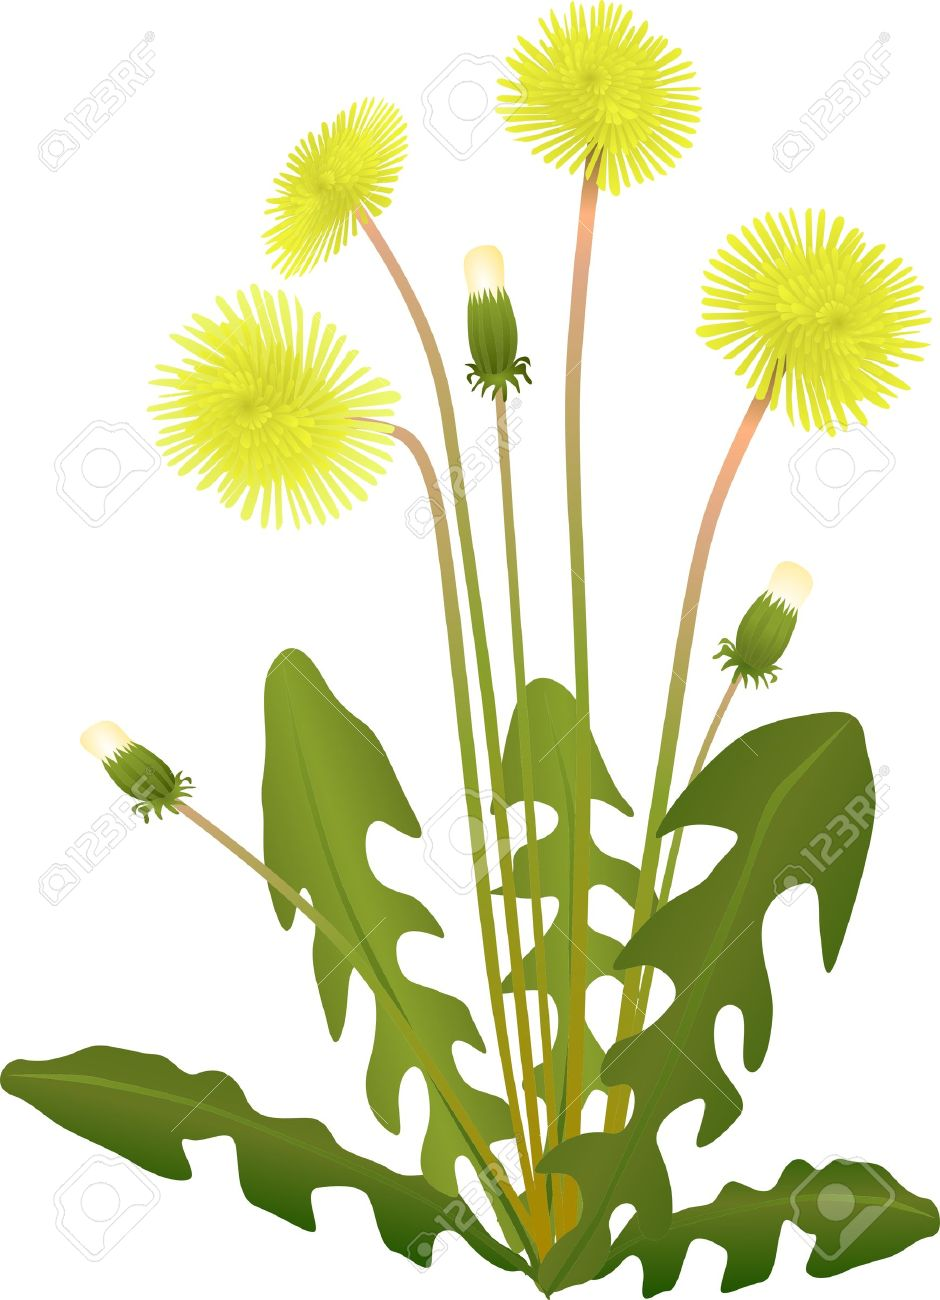 Of Flower Yellow Dandelion Isolated On Background Royalty Free.